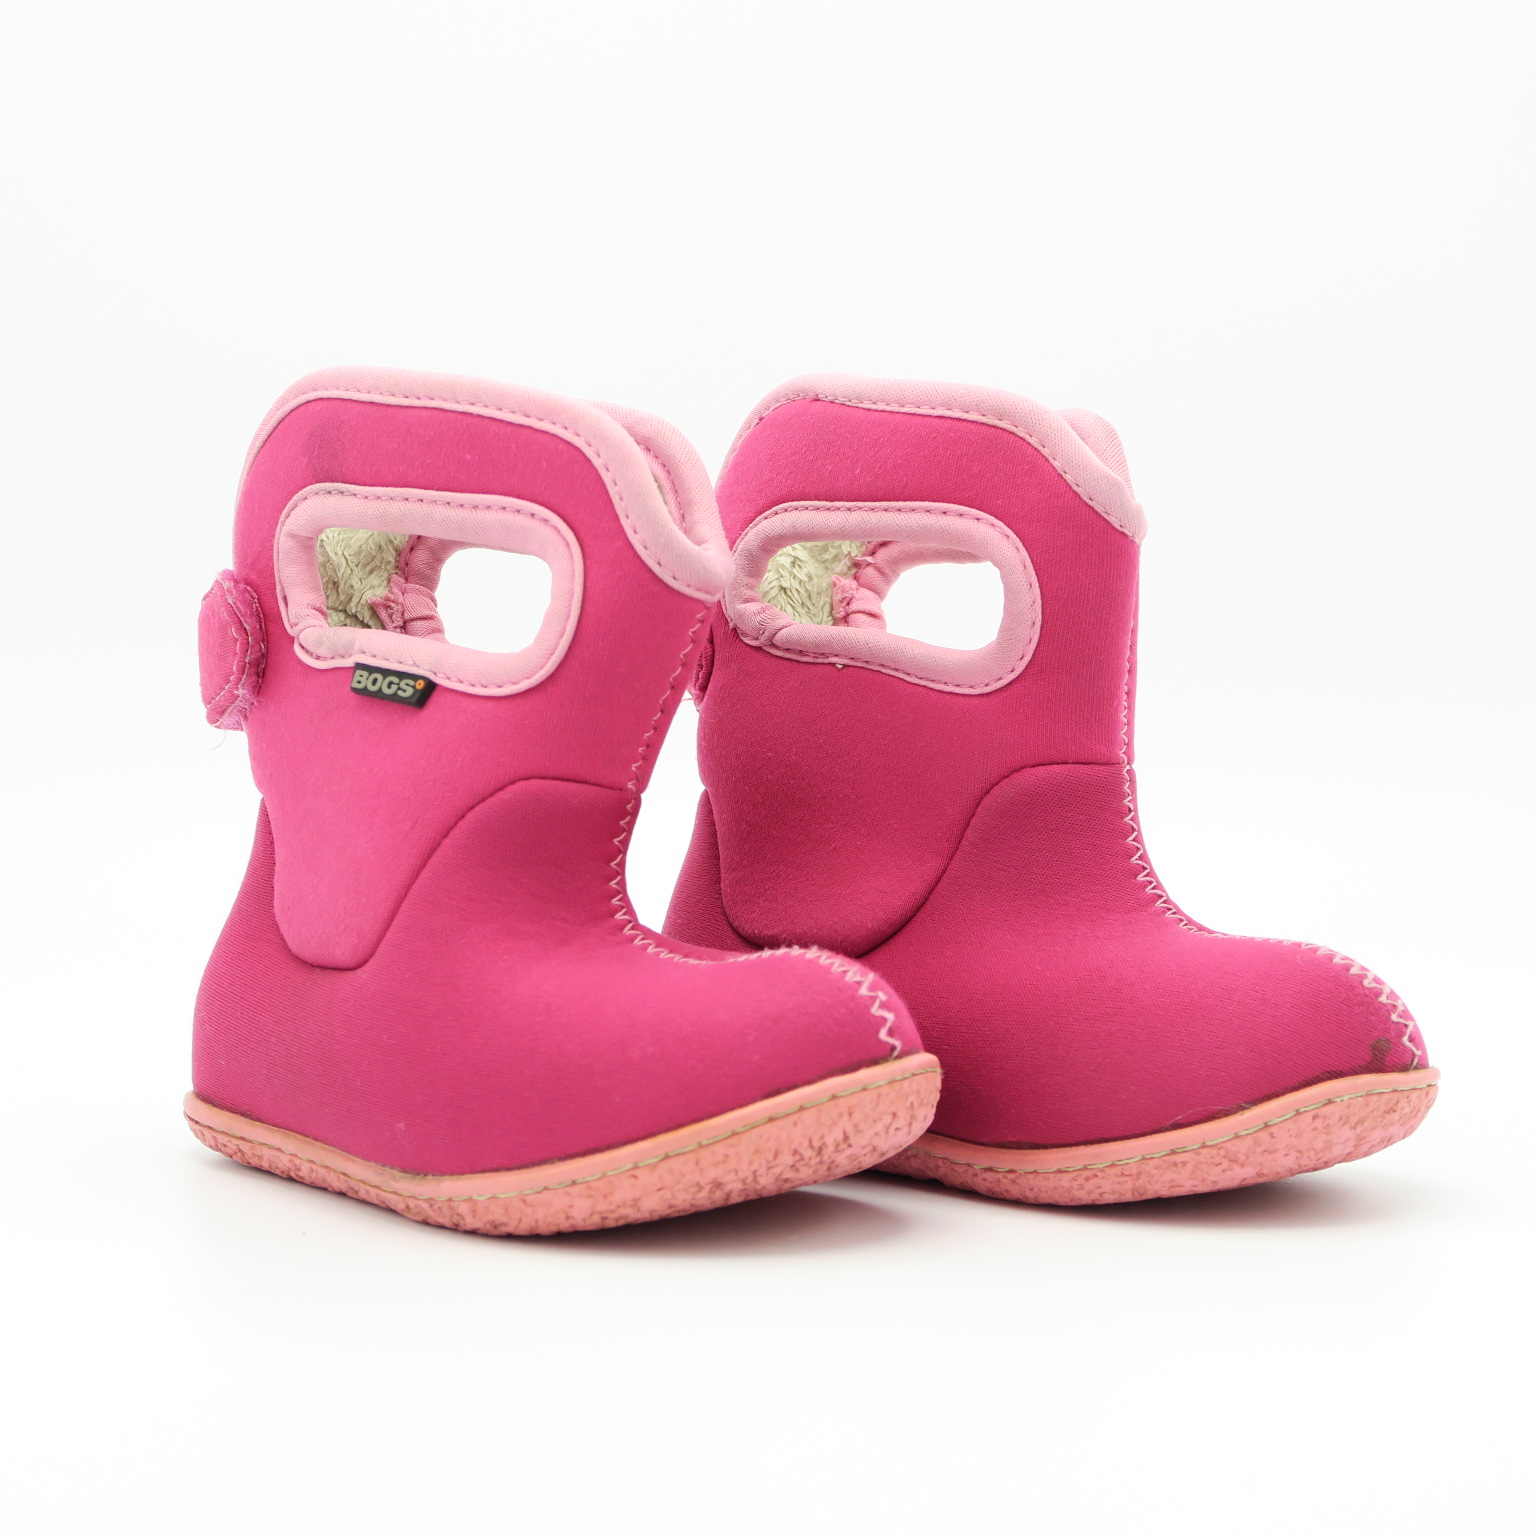 e700c989c4 Rain Boots size: 6 Toddler - The Swoondle Society